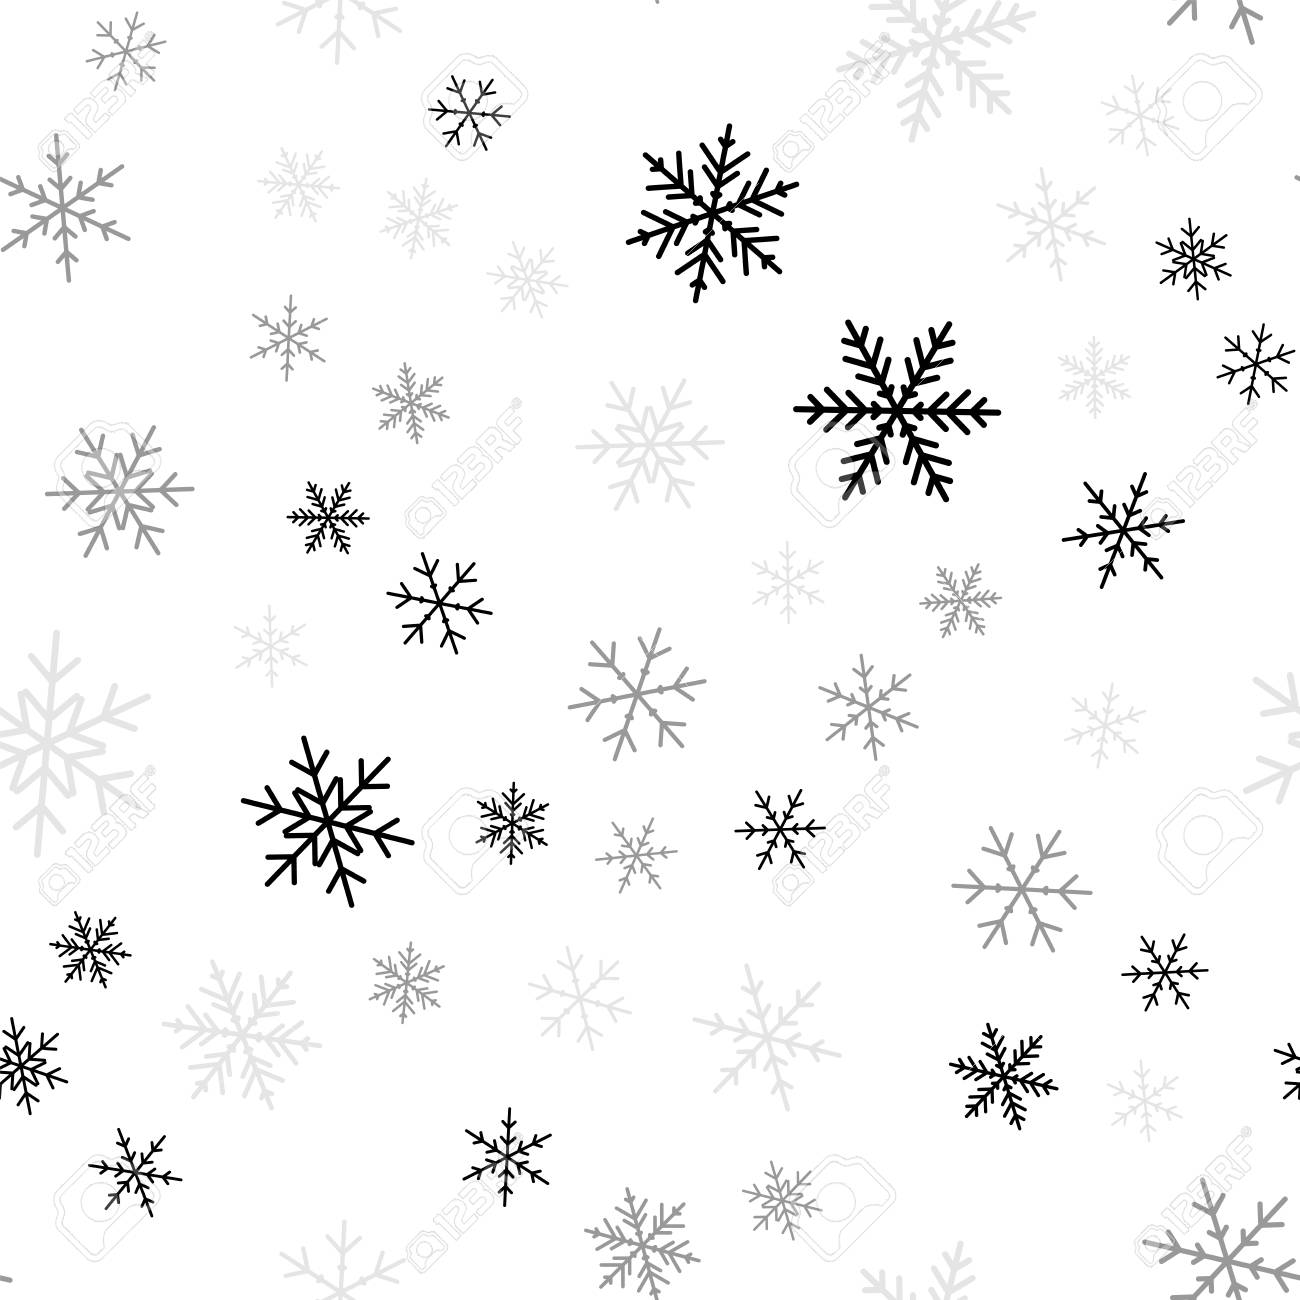 black snowflakes seamless pattern on white christmas background chaotic scattered black snowflakes delightful christmas